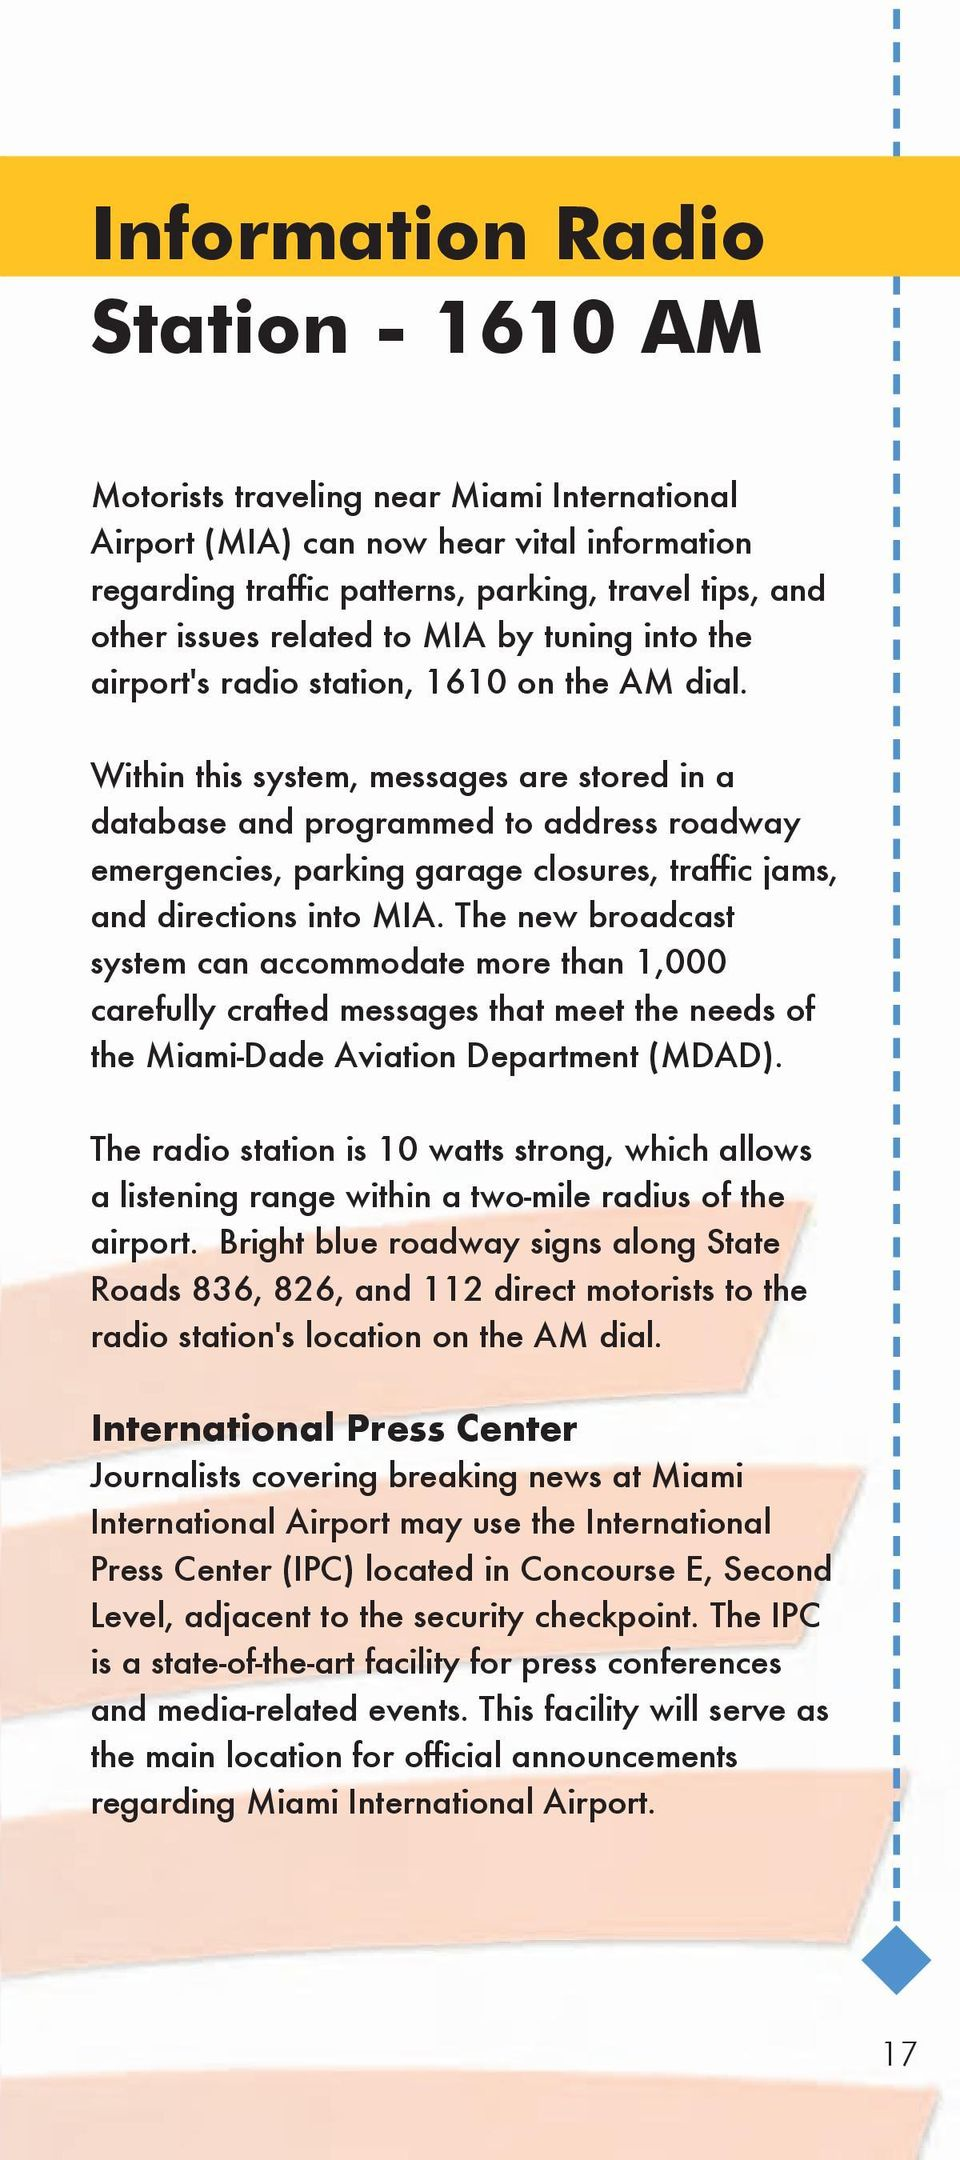 Within this system, messages are stored in a database and programmed to address roadway emergencies, parking garage closures, traffic jams, and directions into MIA.